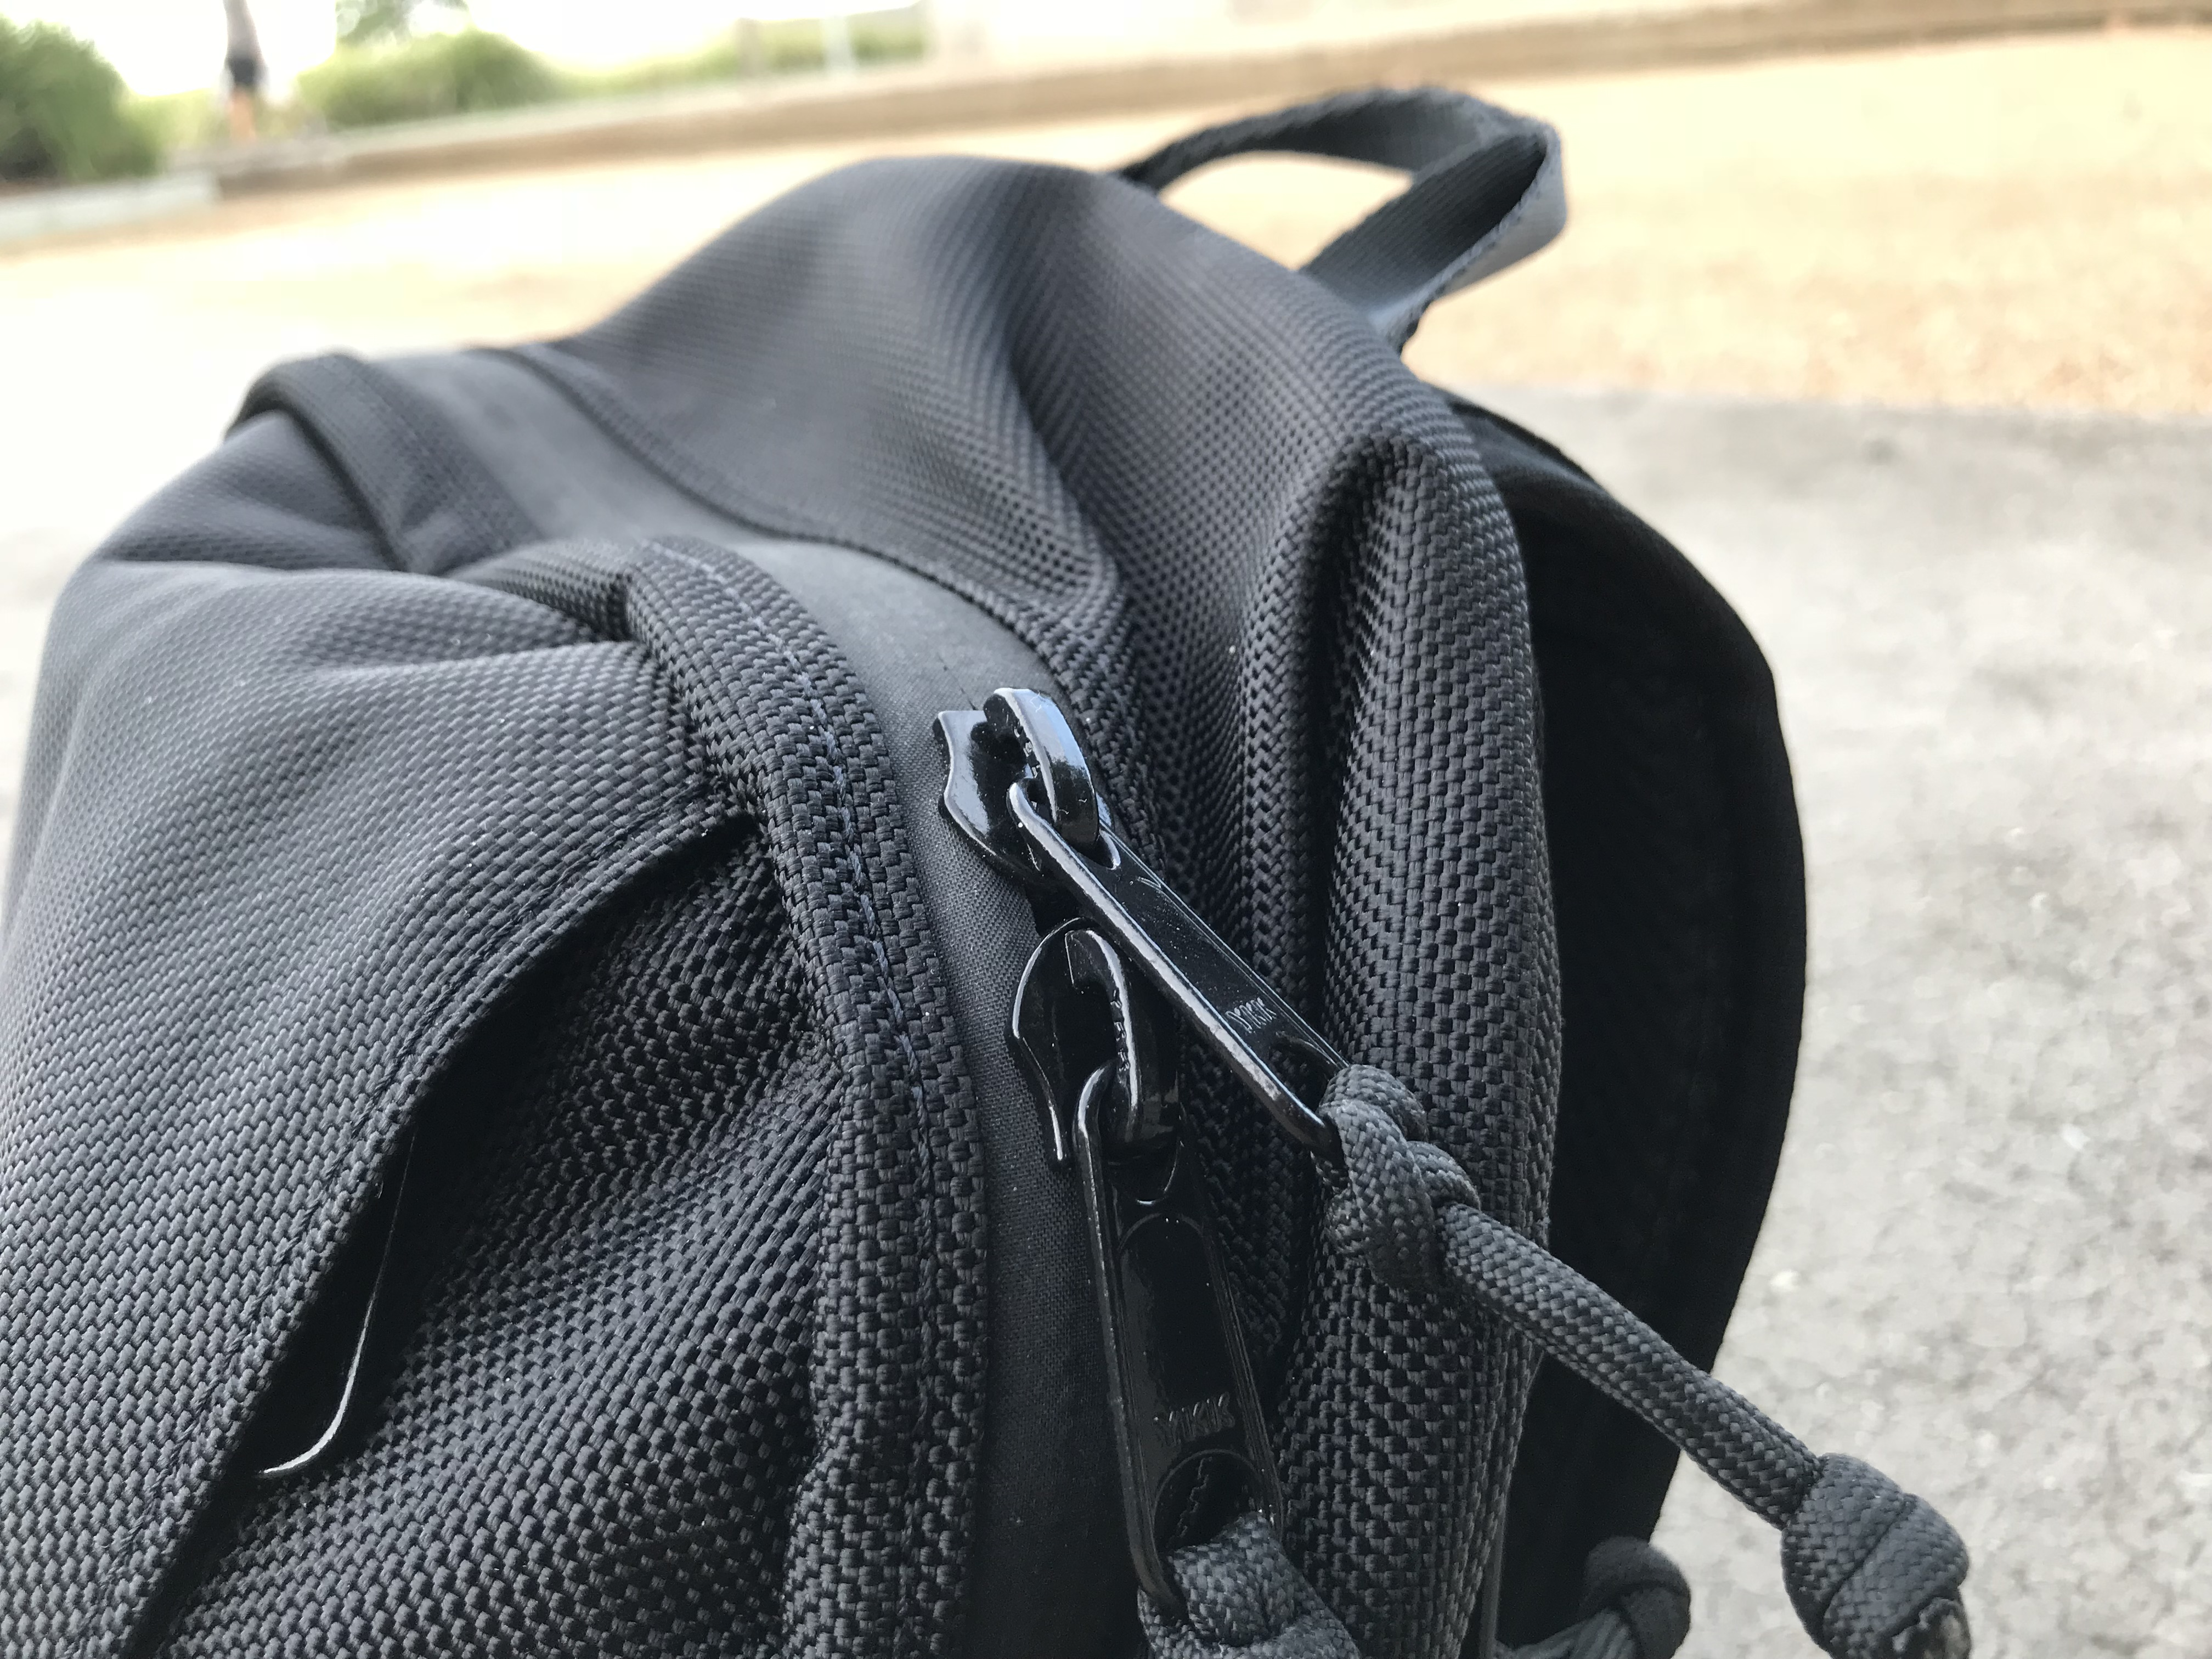 Arktype Dashpack Review Zippers